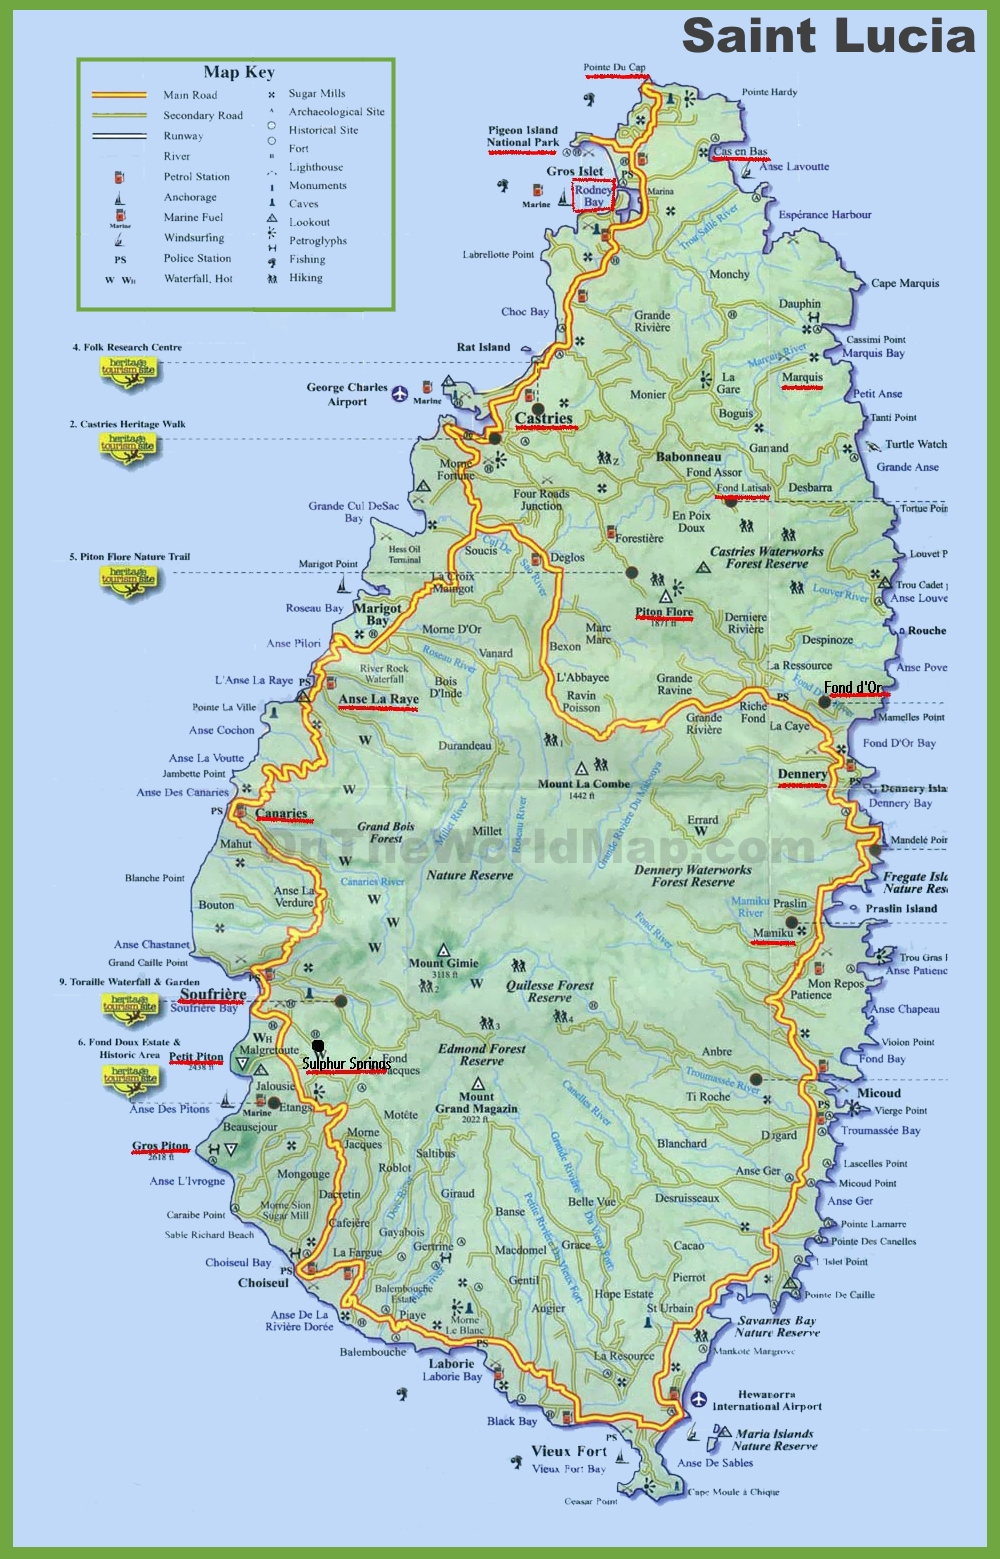 Saint Lucia island Maps | Maps of Saint Lucia